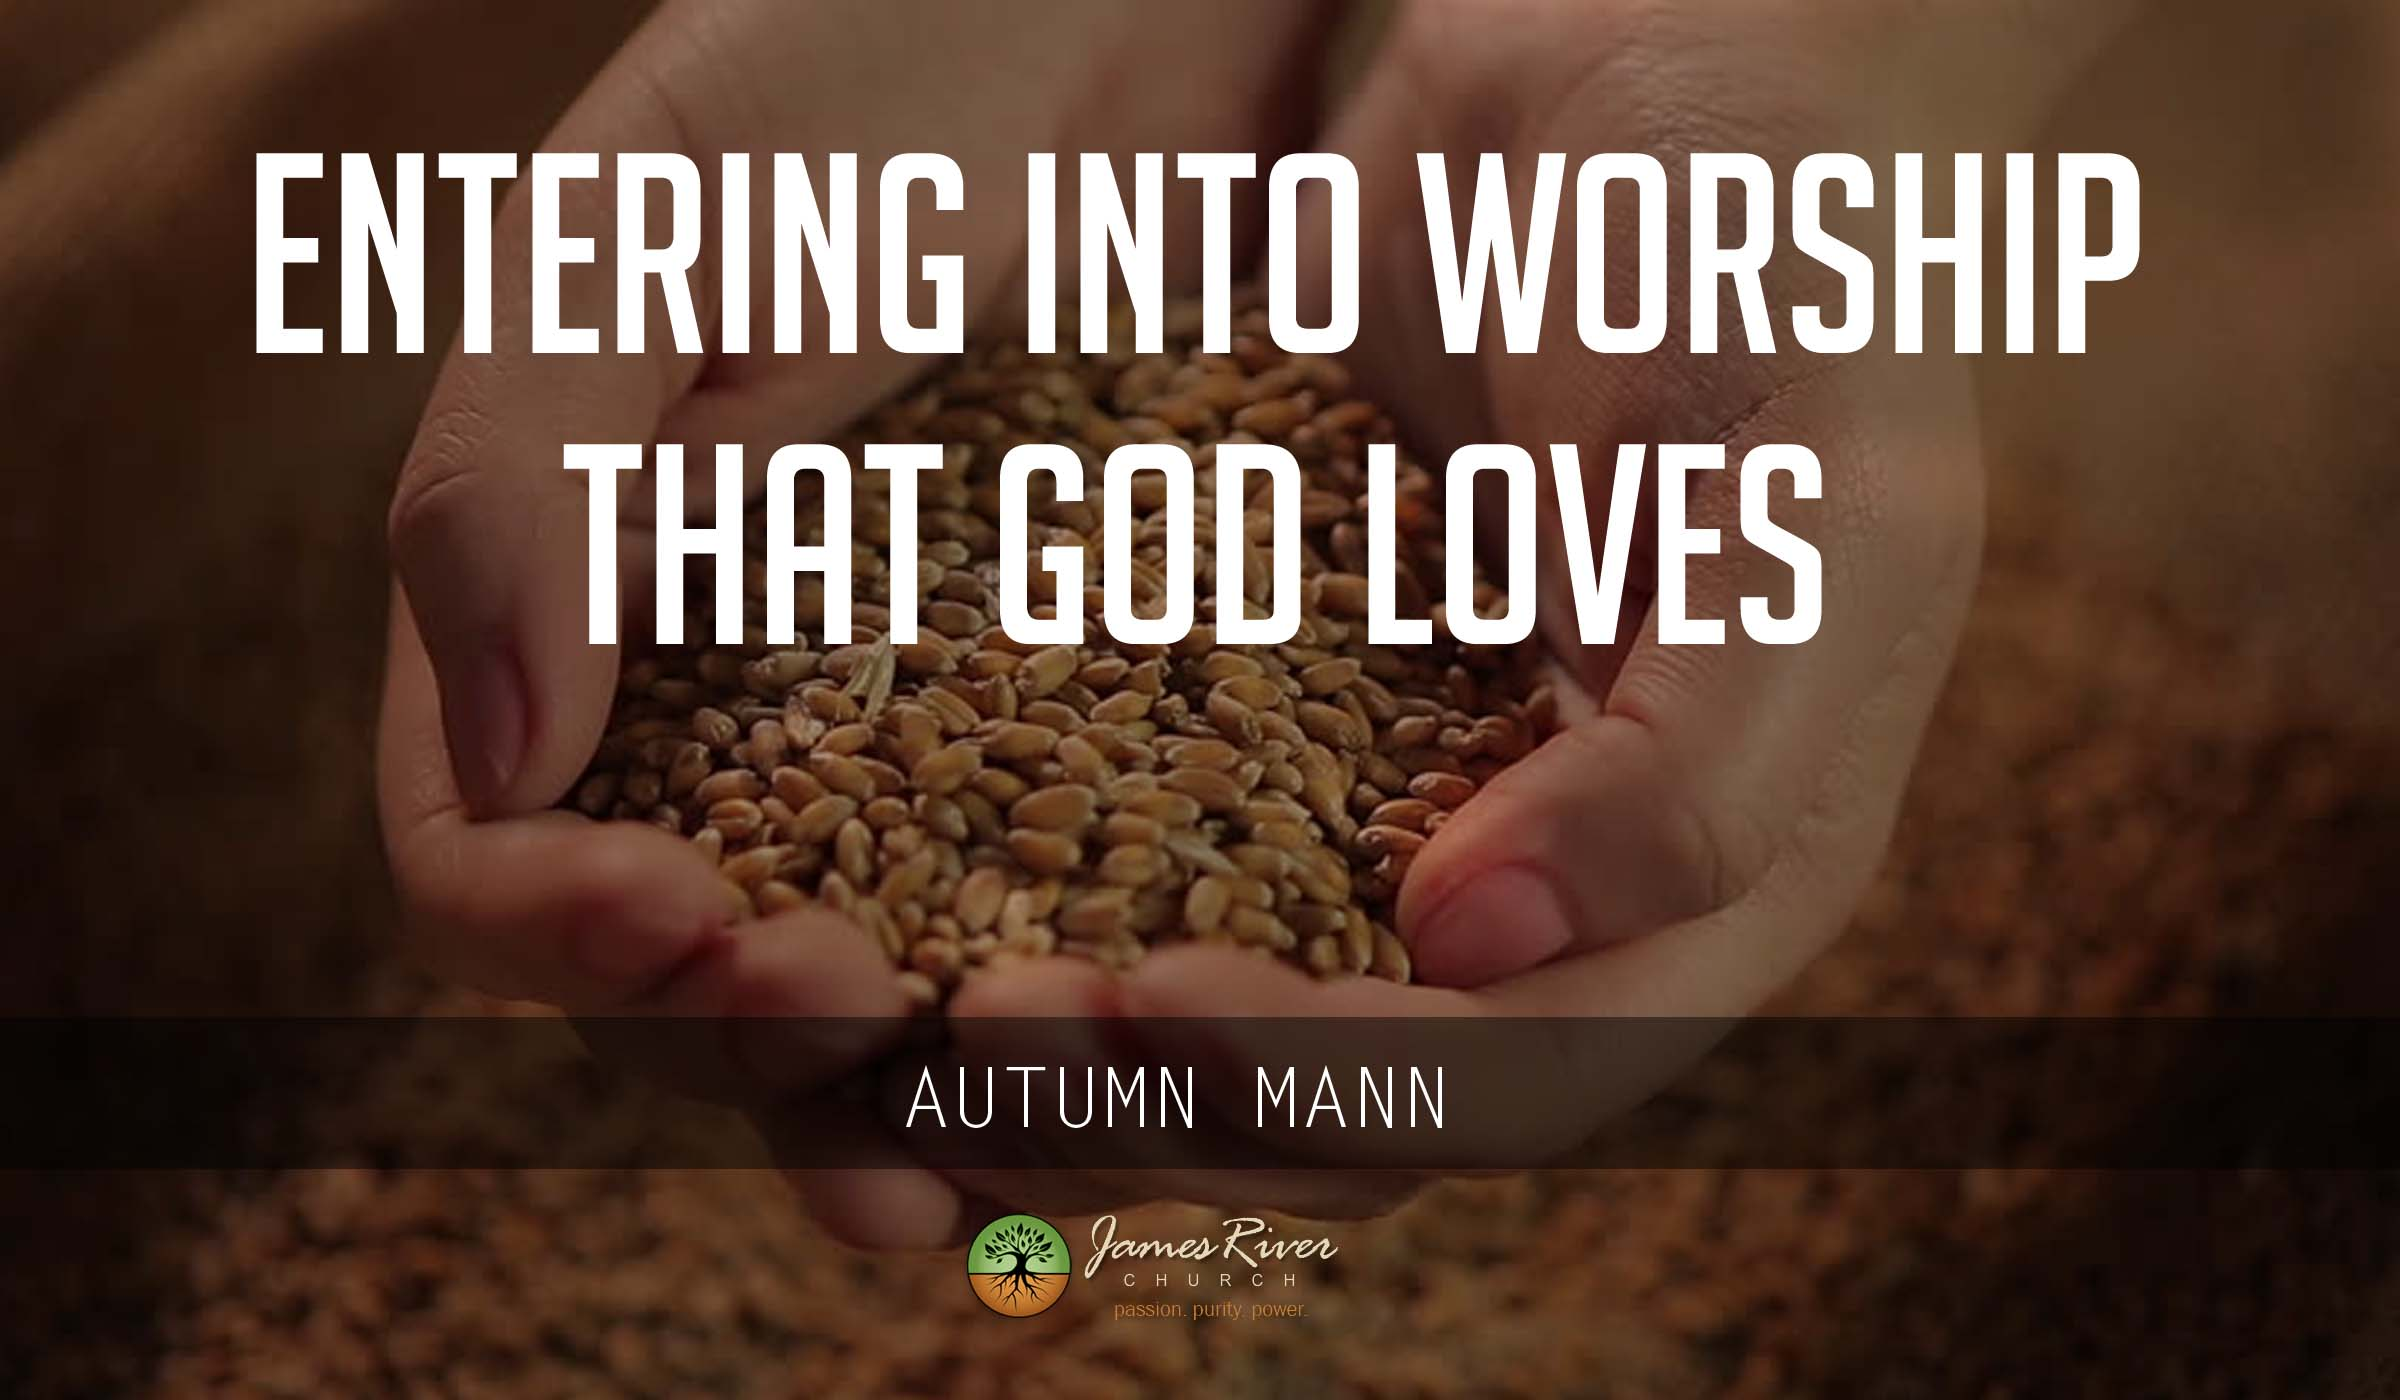 Entering Into Worship That God Loves